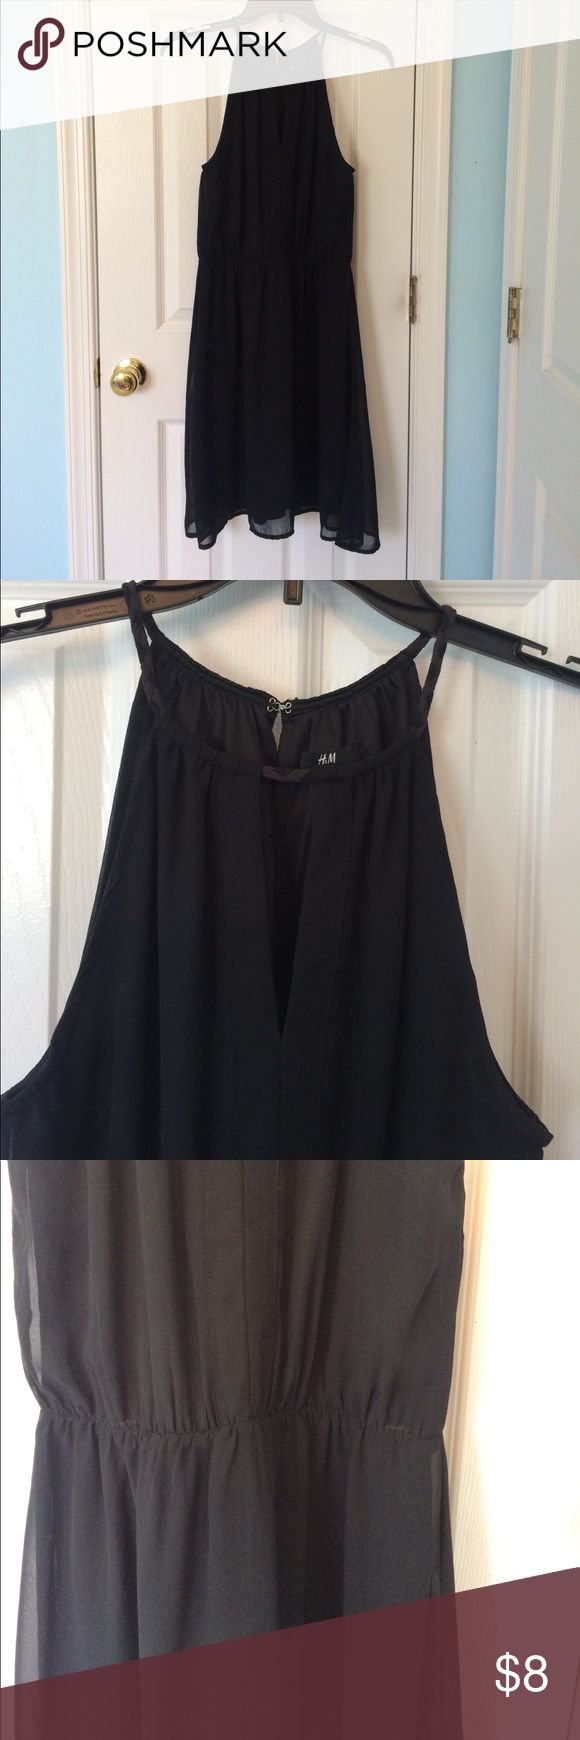 Black H&M dress Black dress, great for wedding or date night. Gathered waist, key hole front and back, fully lined. H&M Dresses Mini